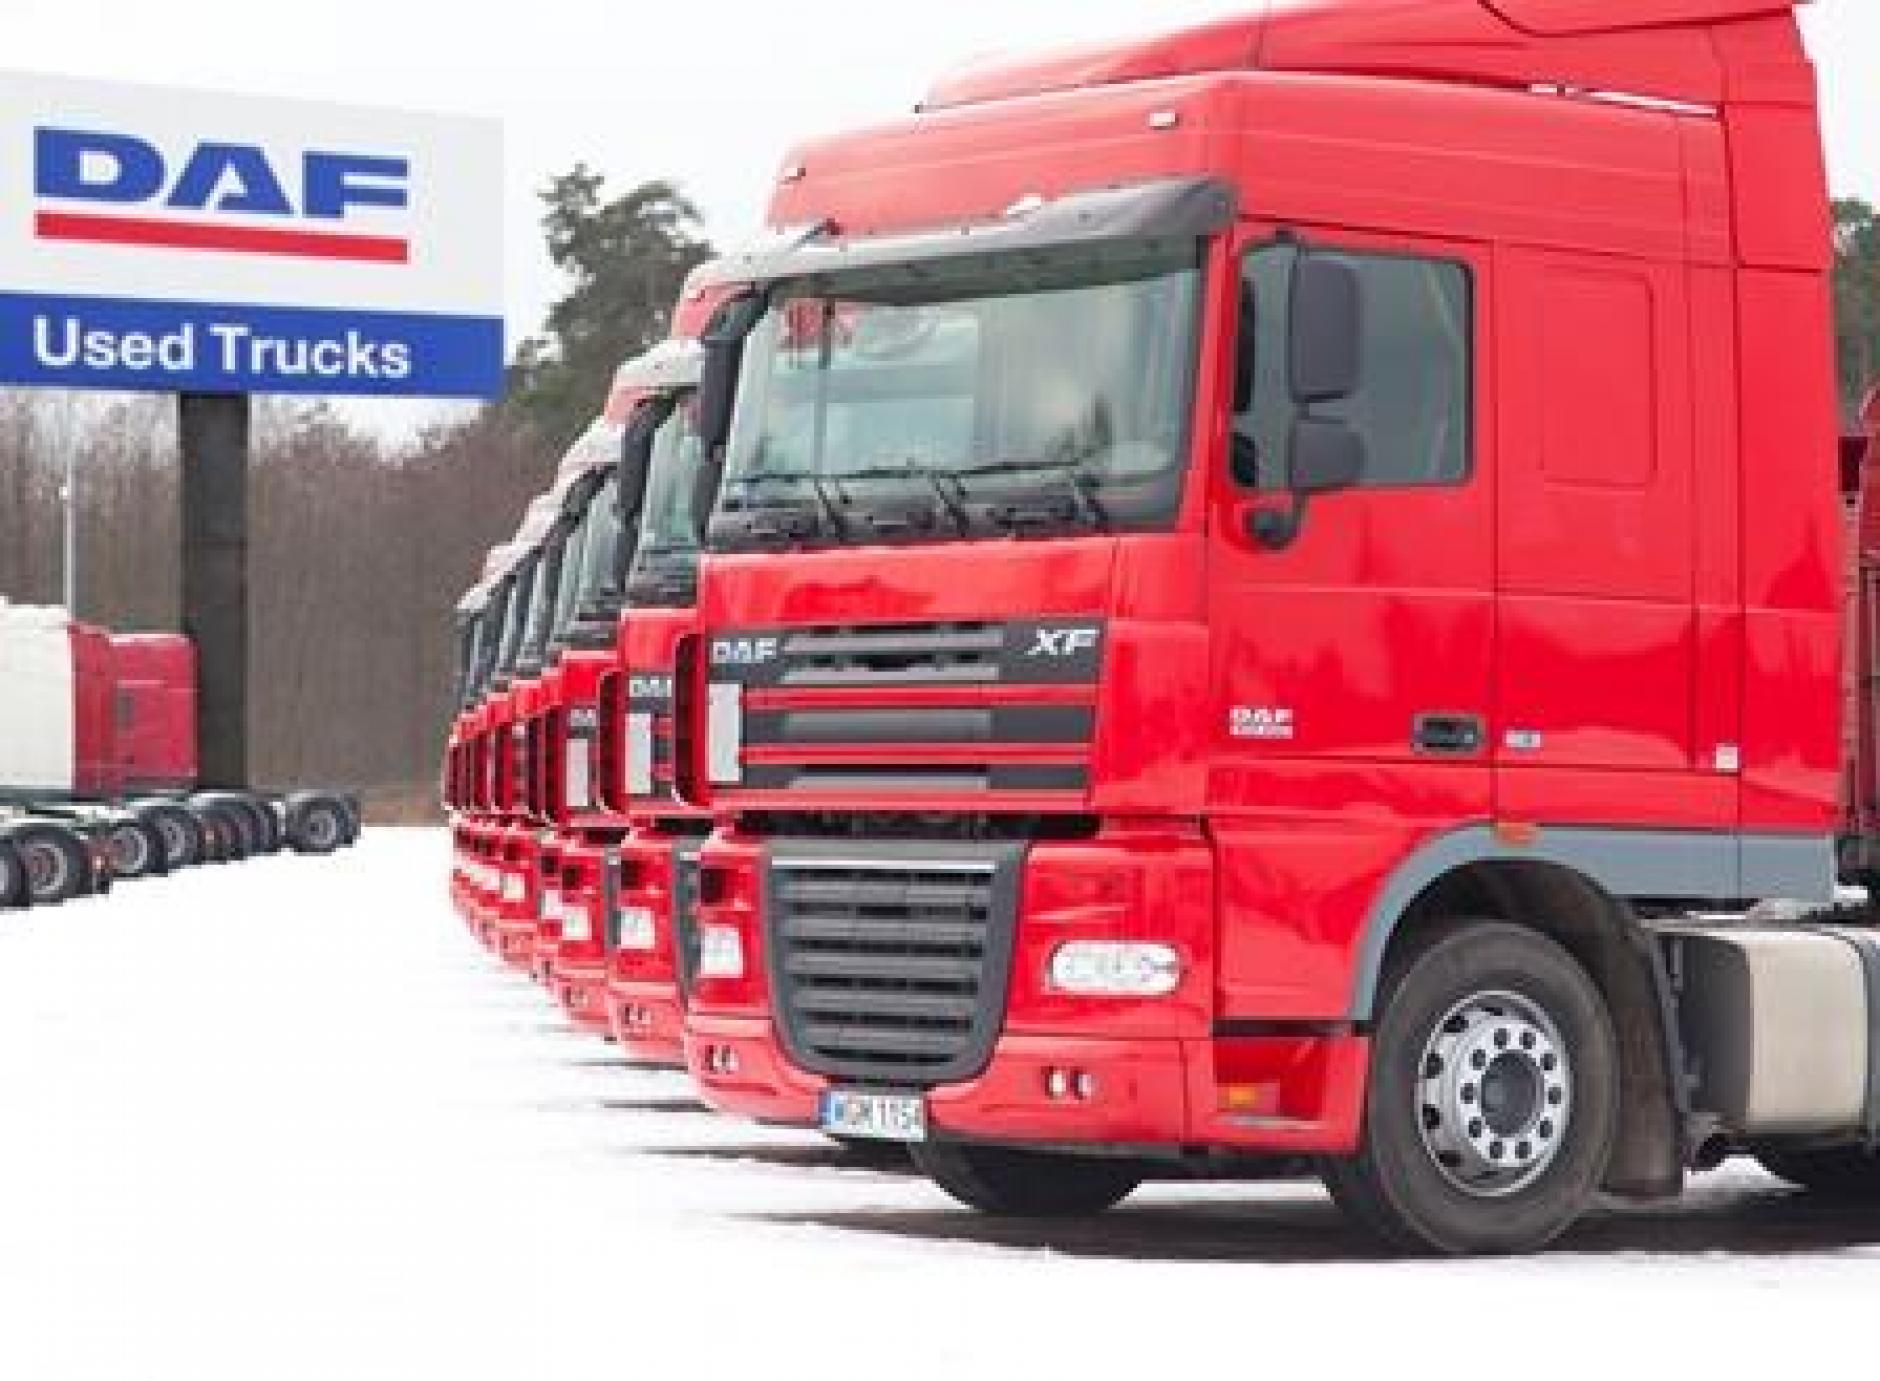 Daf opens groundbreaking used truck sales site in poland for Commercial motor used trucks